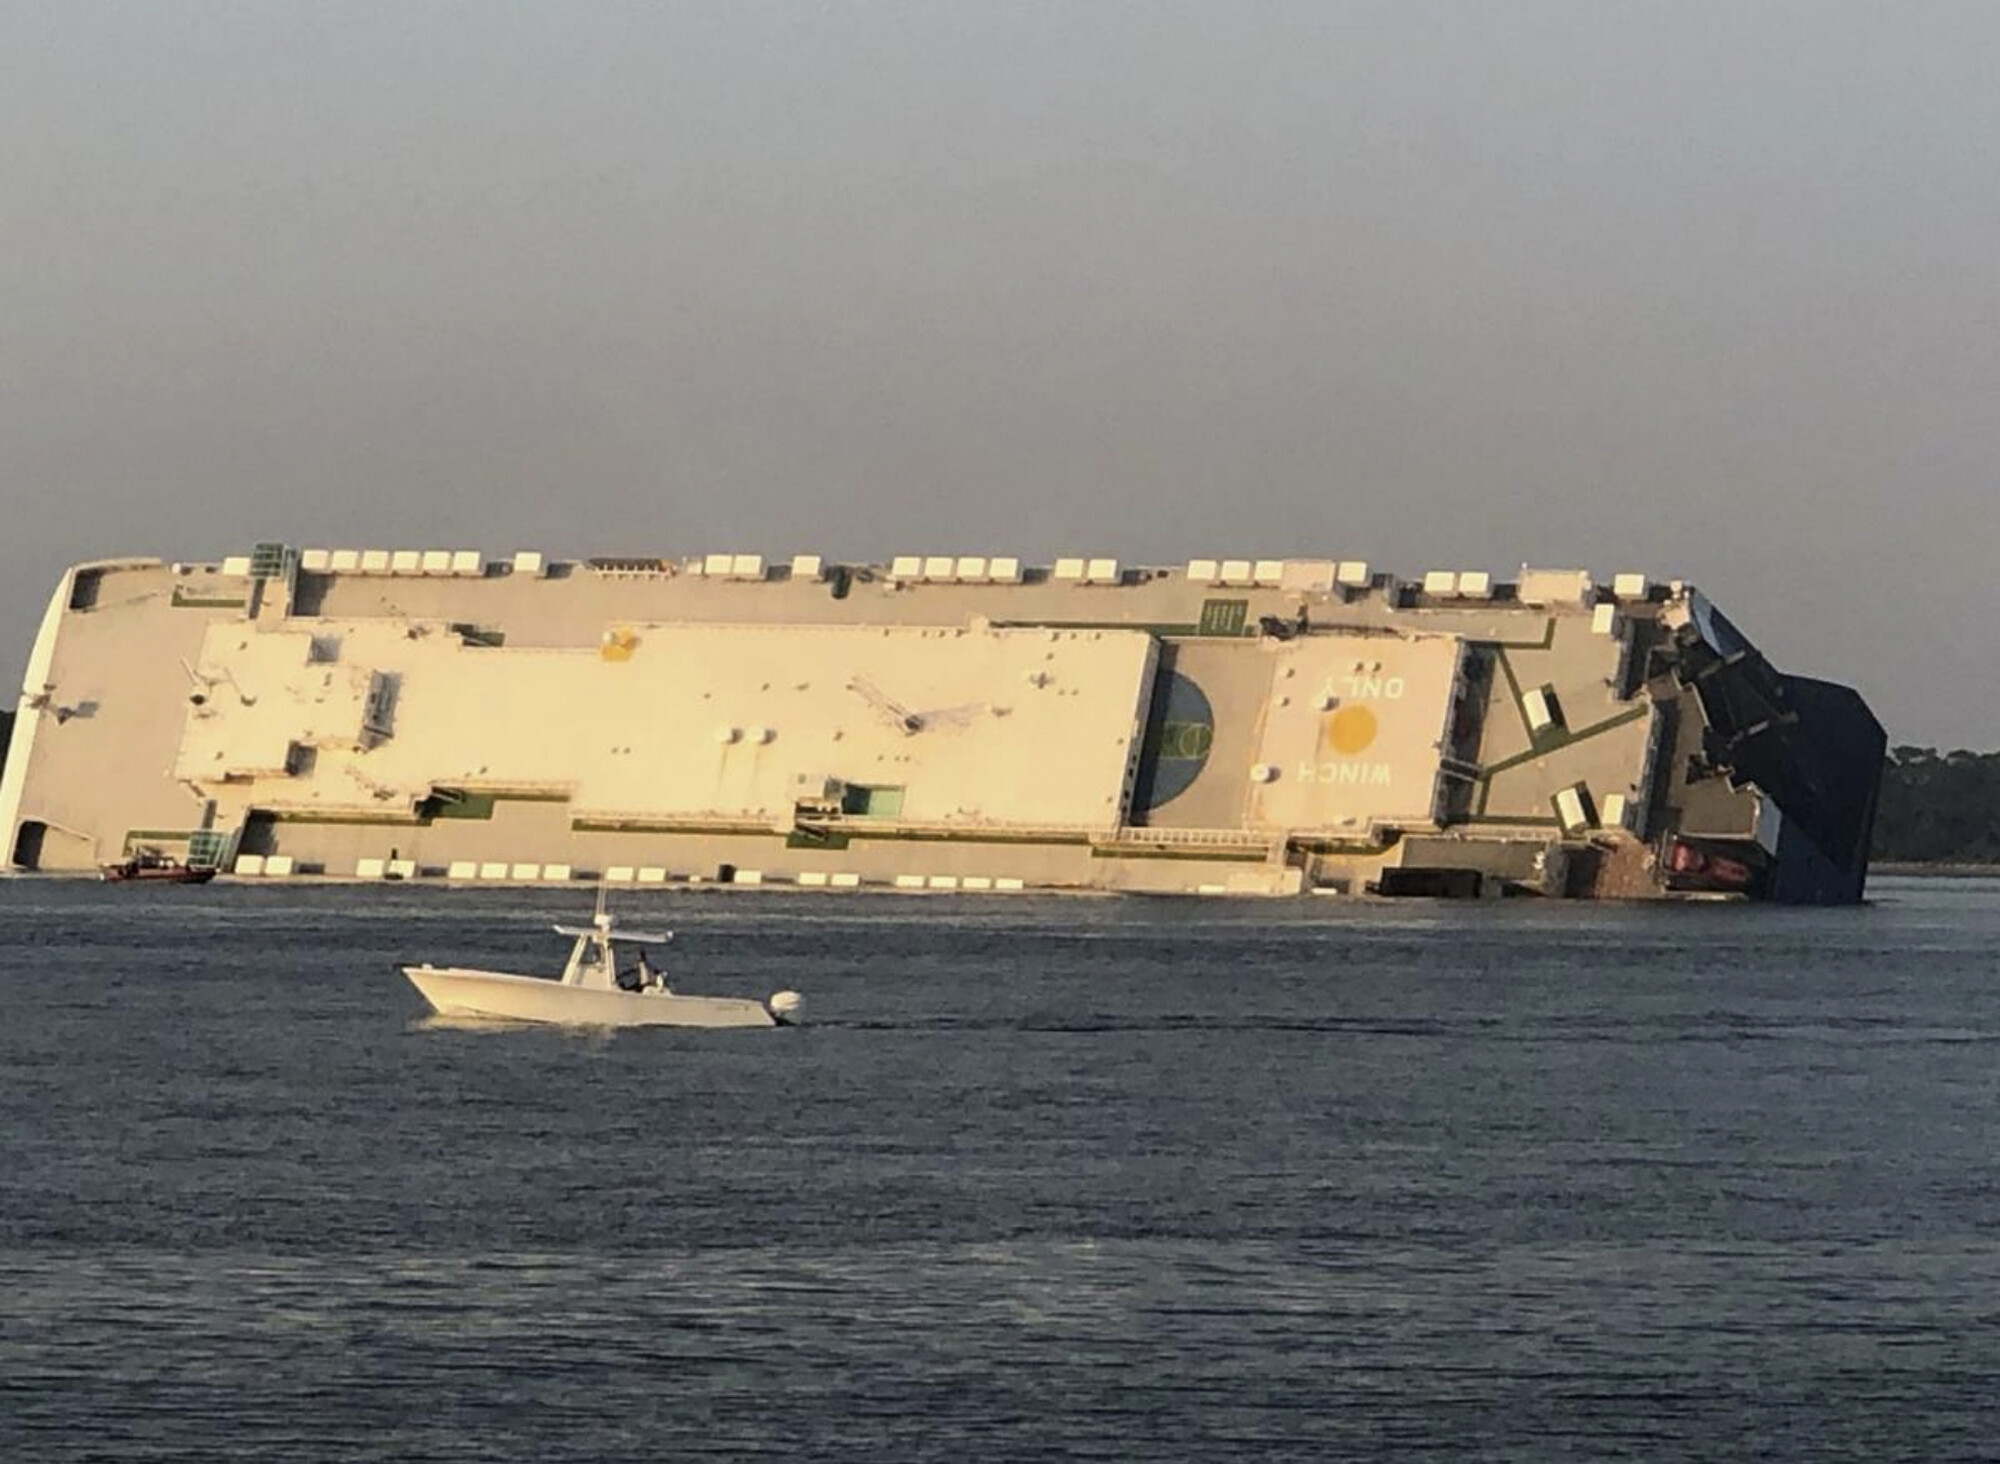 <i>Buff Leavy/The Brunswick News/AP</i><br/>The capsizing of the Golden Ray cargo ship off the Georgia coast two years ago